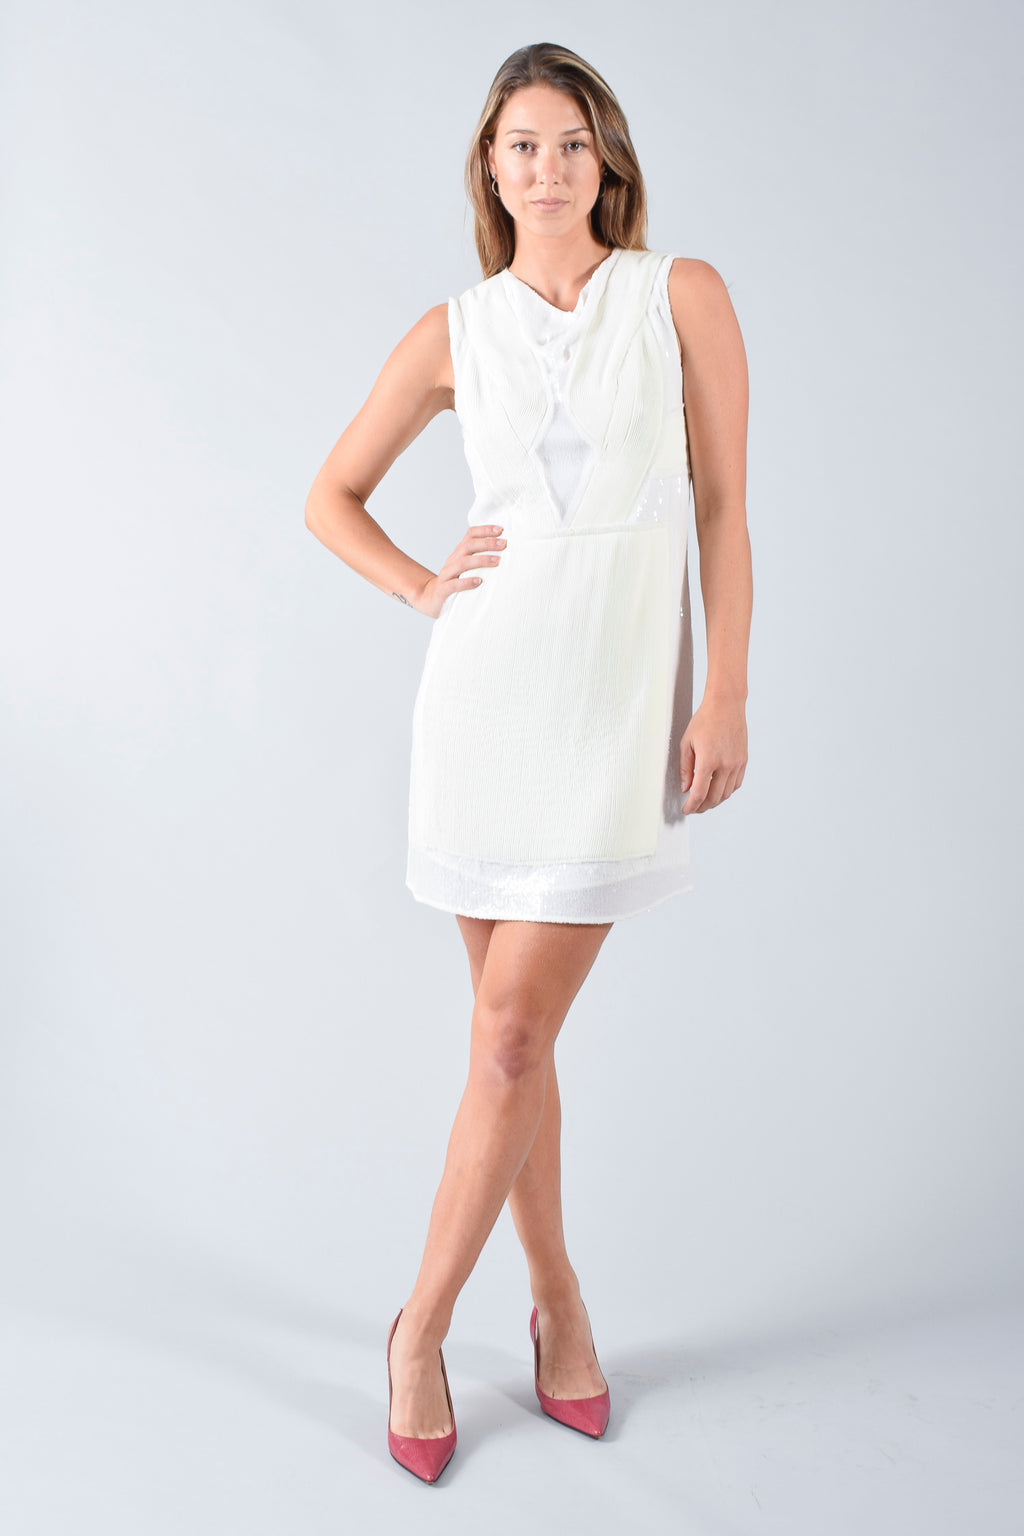 3.1 Phillip Lim White Sequin & Chiffon Dress Size 6